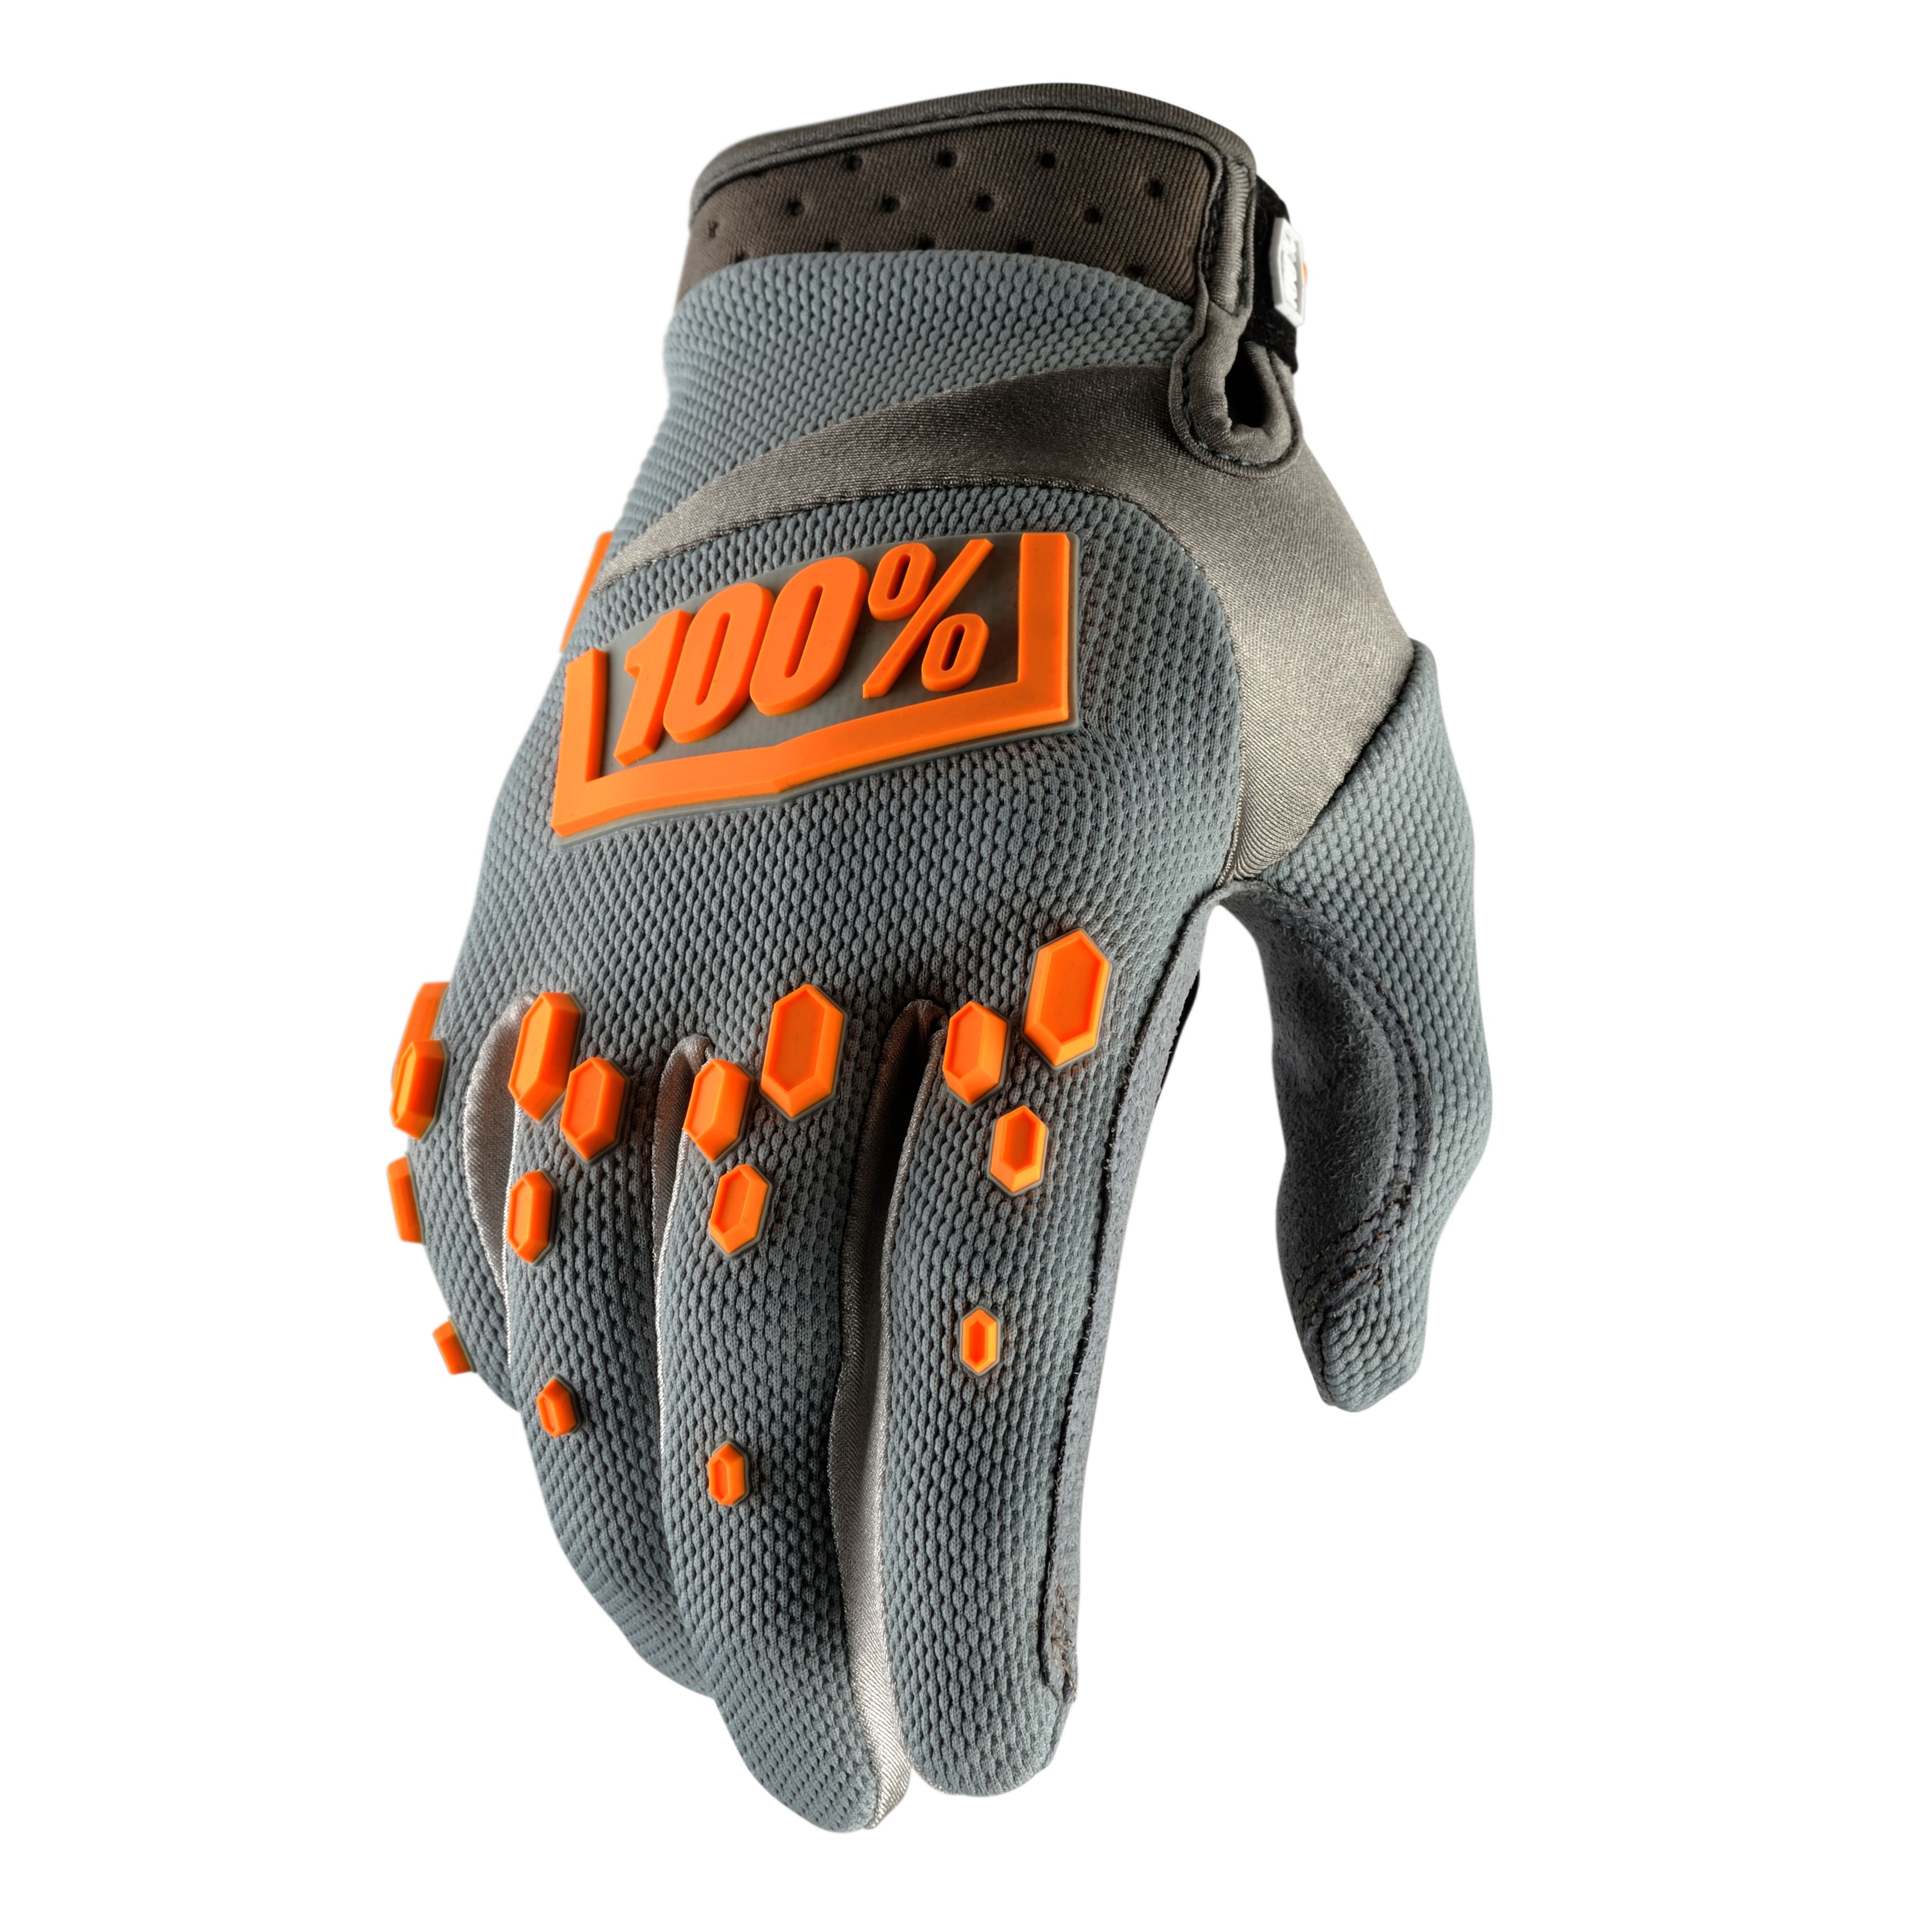 Gants Cross 100% Airmatic - Gris